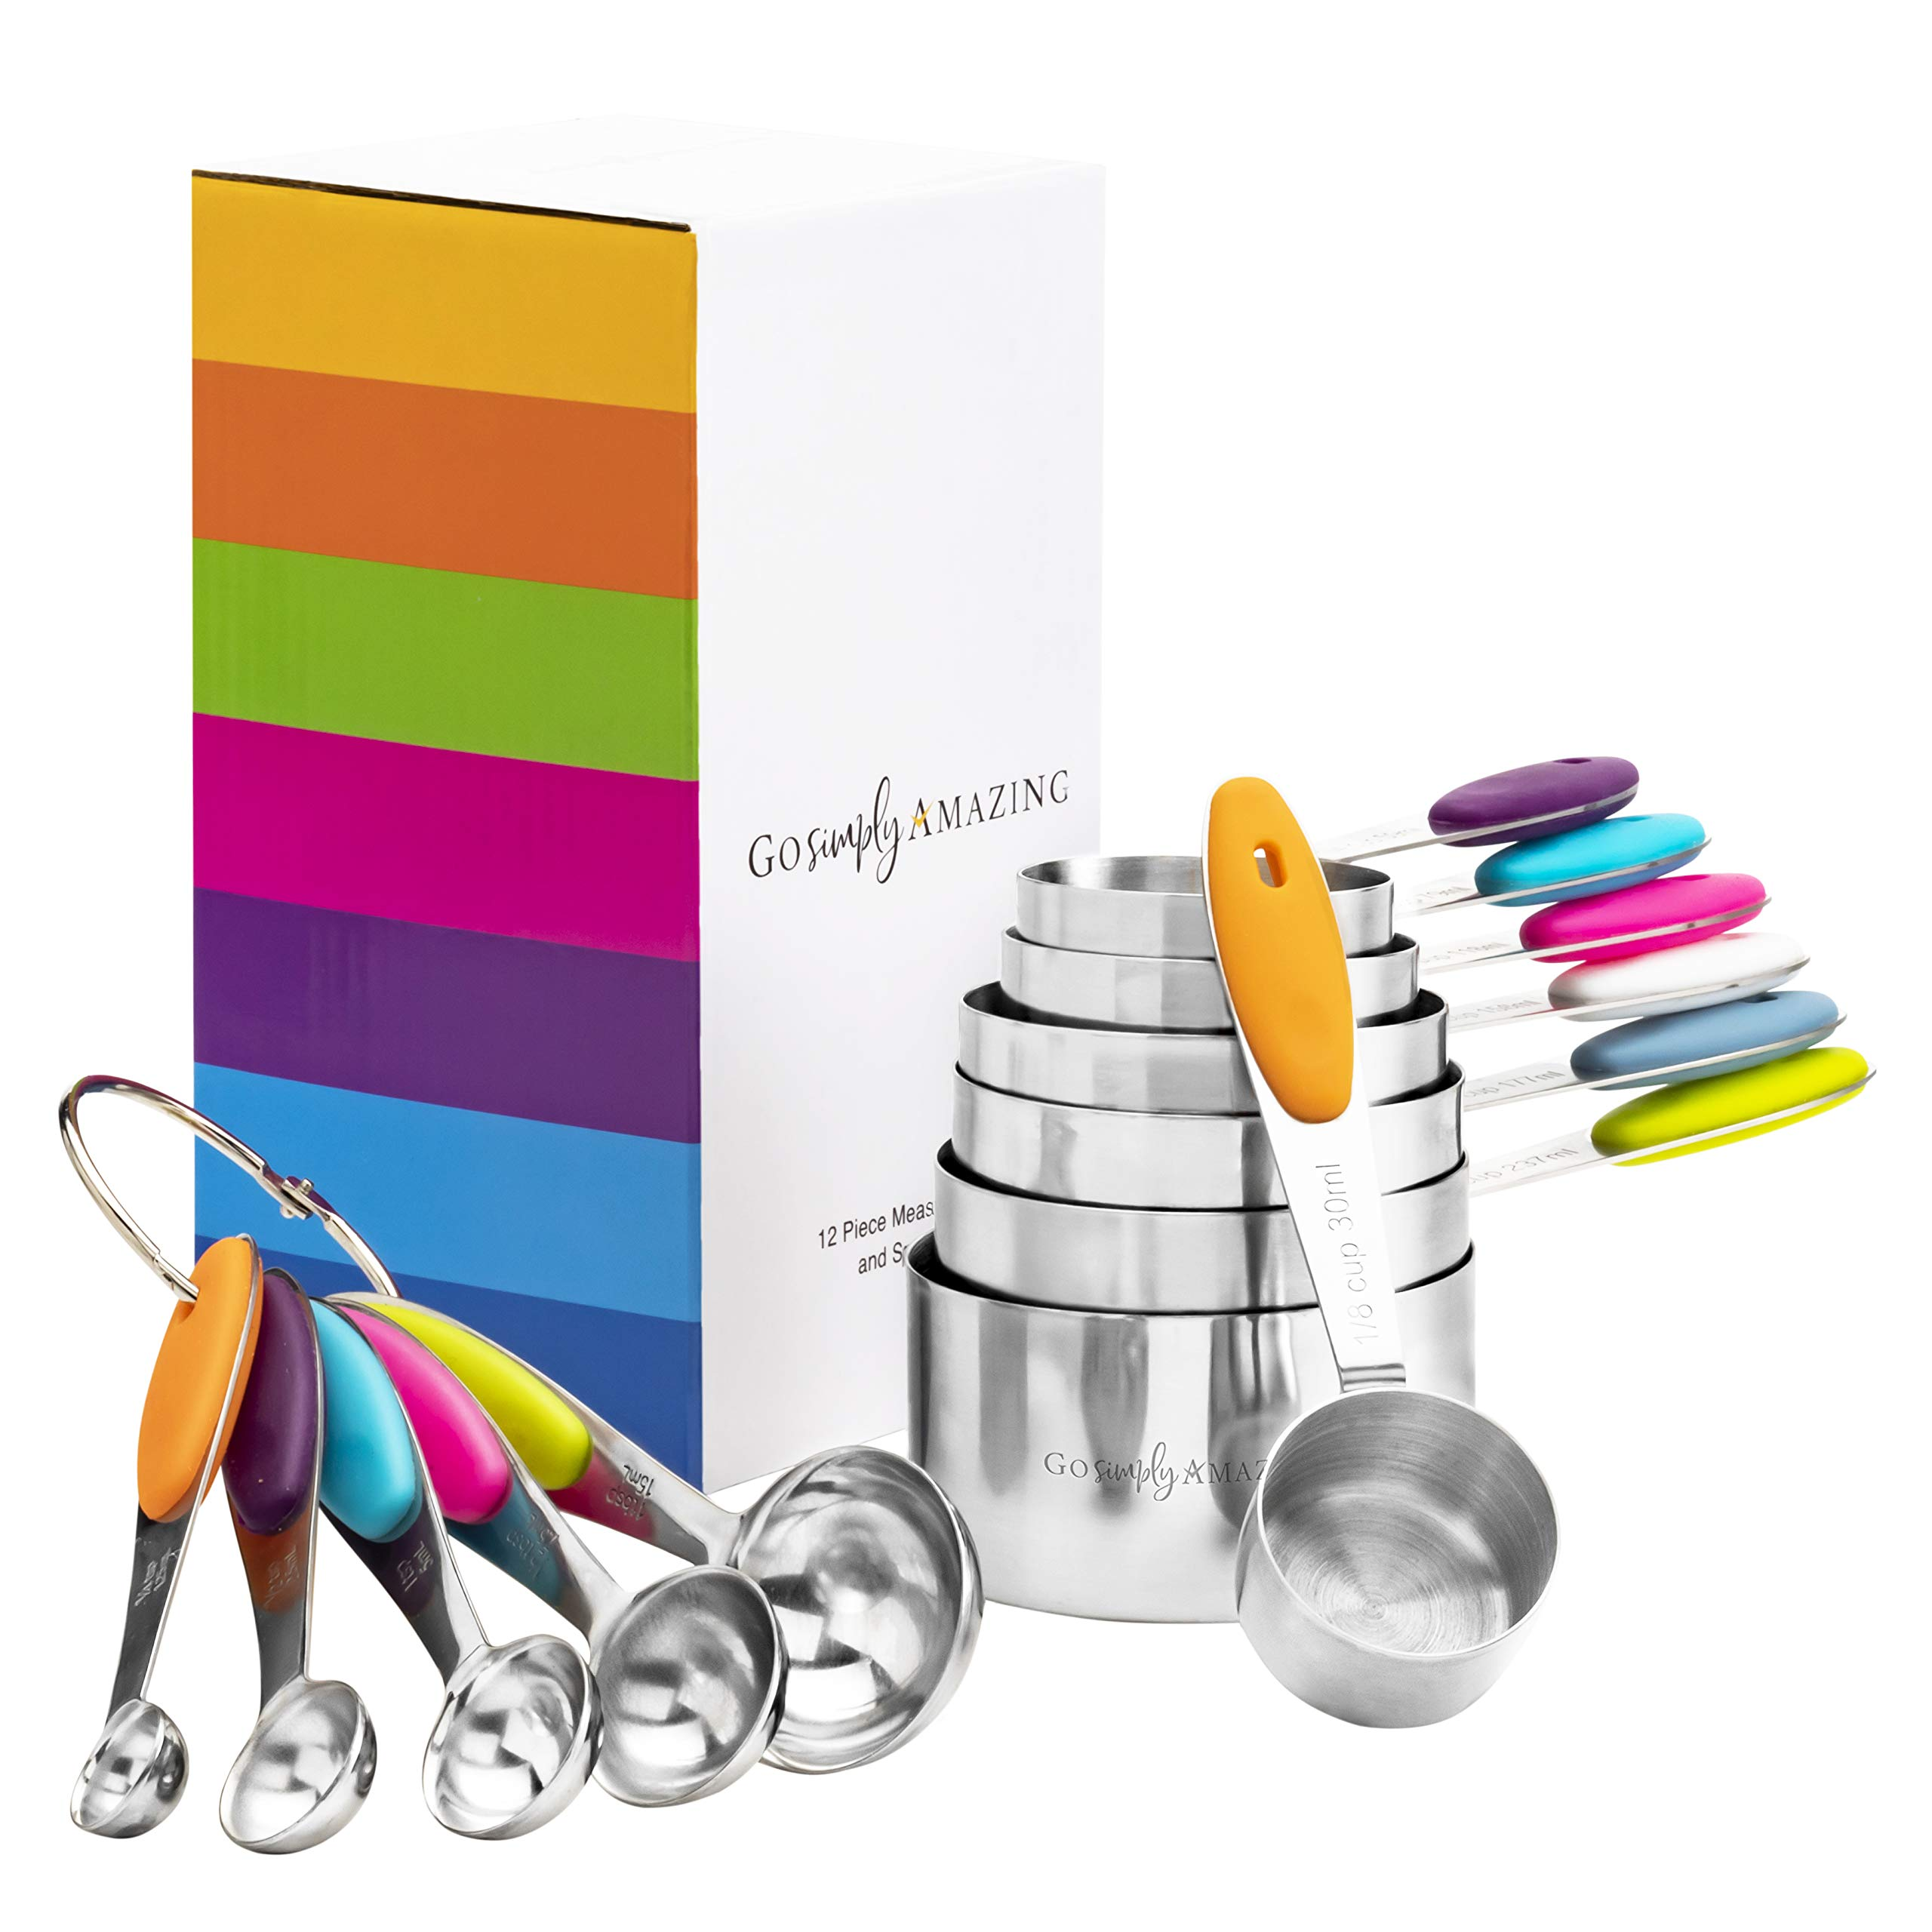 Go Simply Amazing 8541974562 Stainless Steel Complete 12 Piece Nesting Measuring Cup and Spoons Set -Perfect For Cooking and Baking - Dry or Liquid Ingredients by Go Simply Amazing